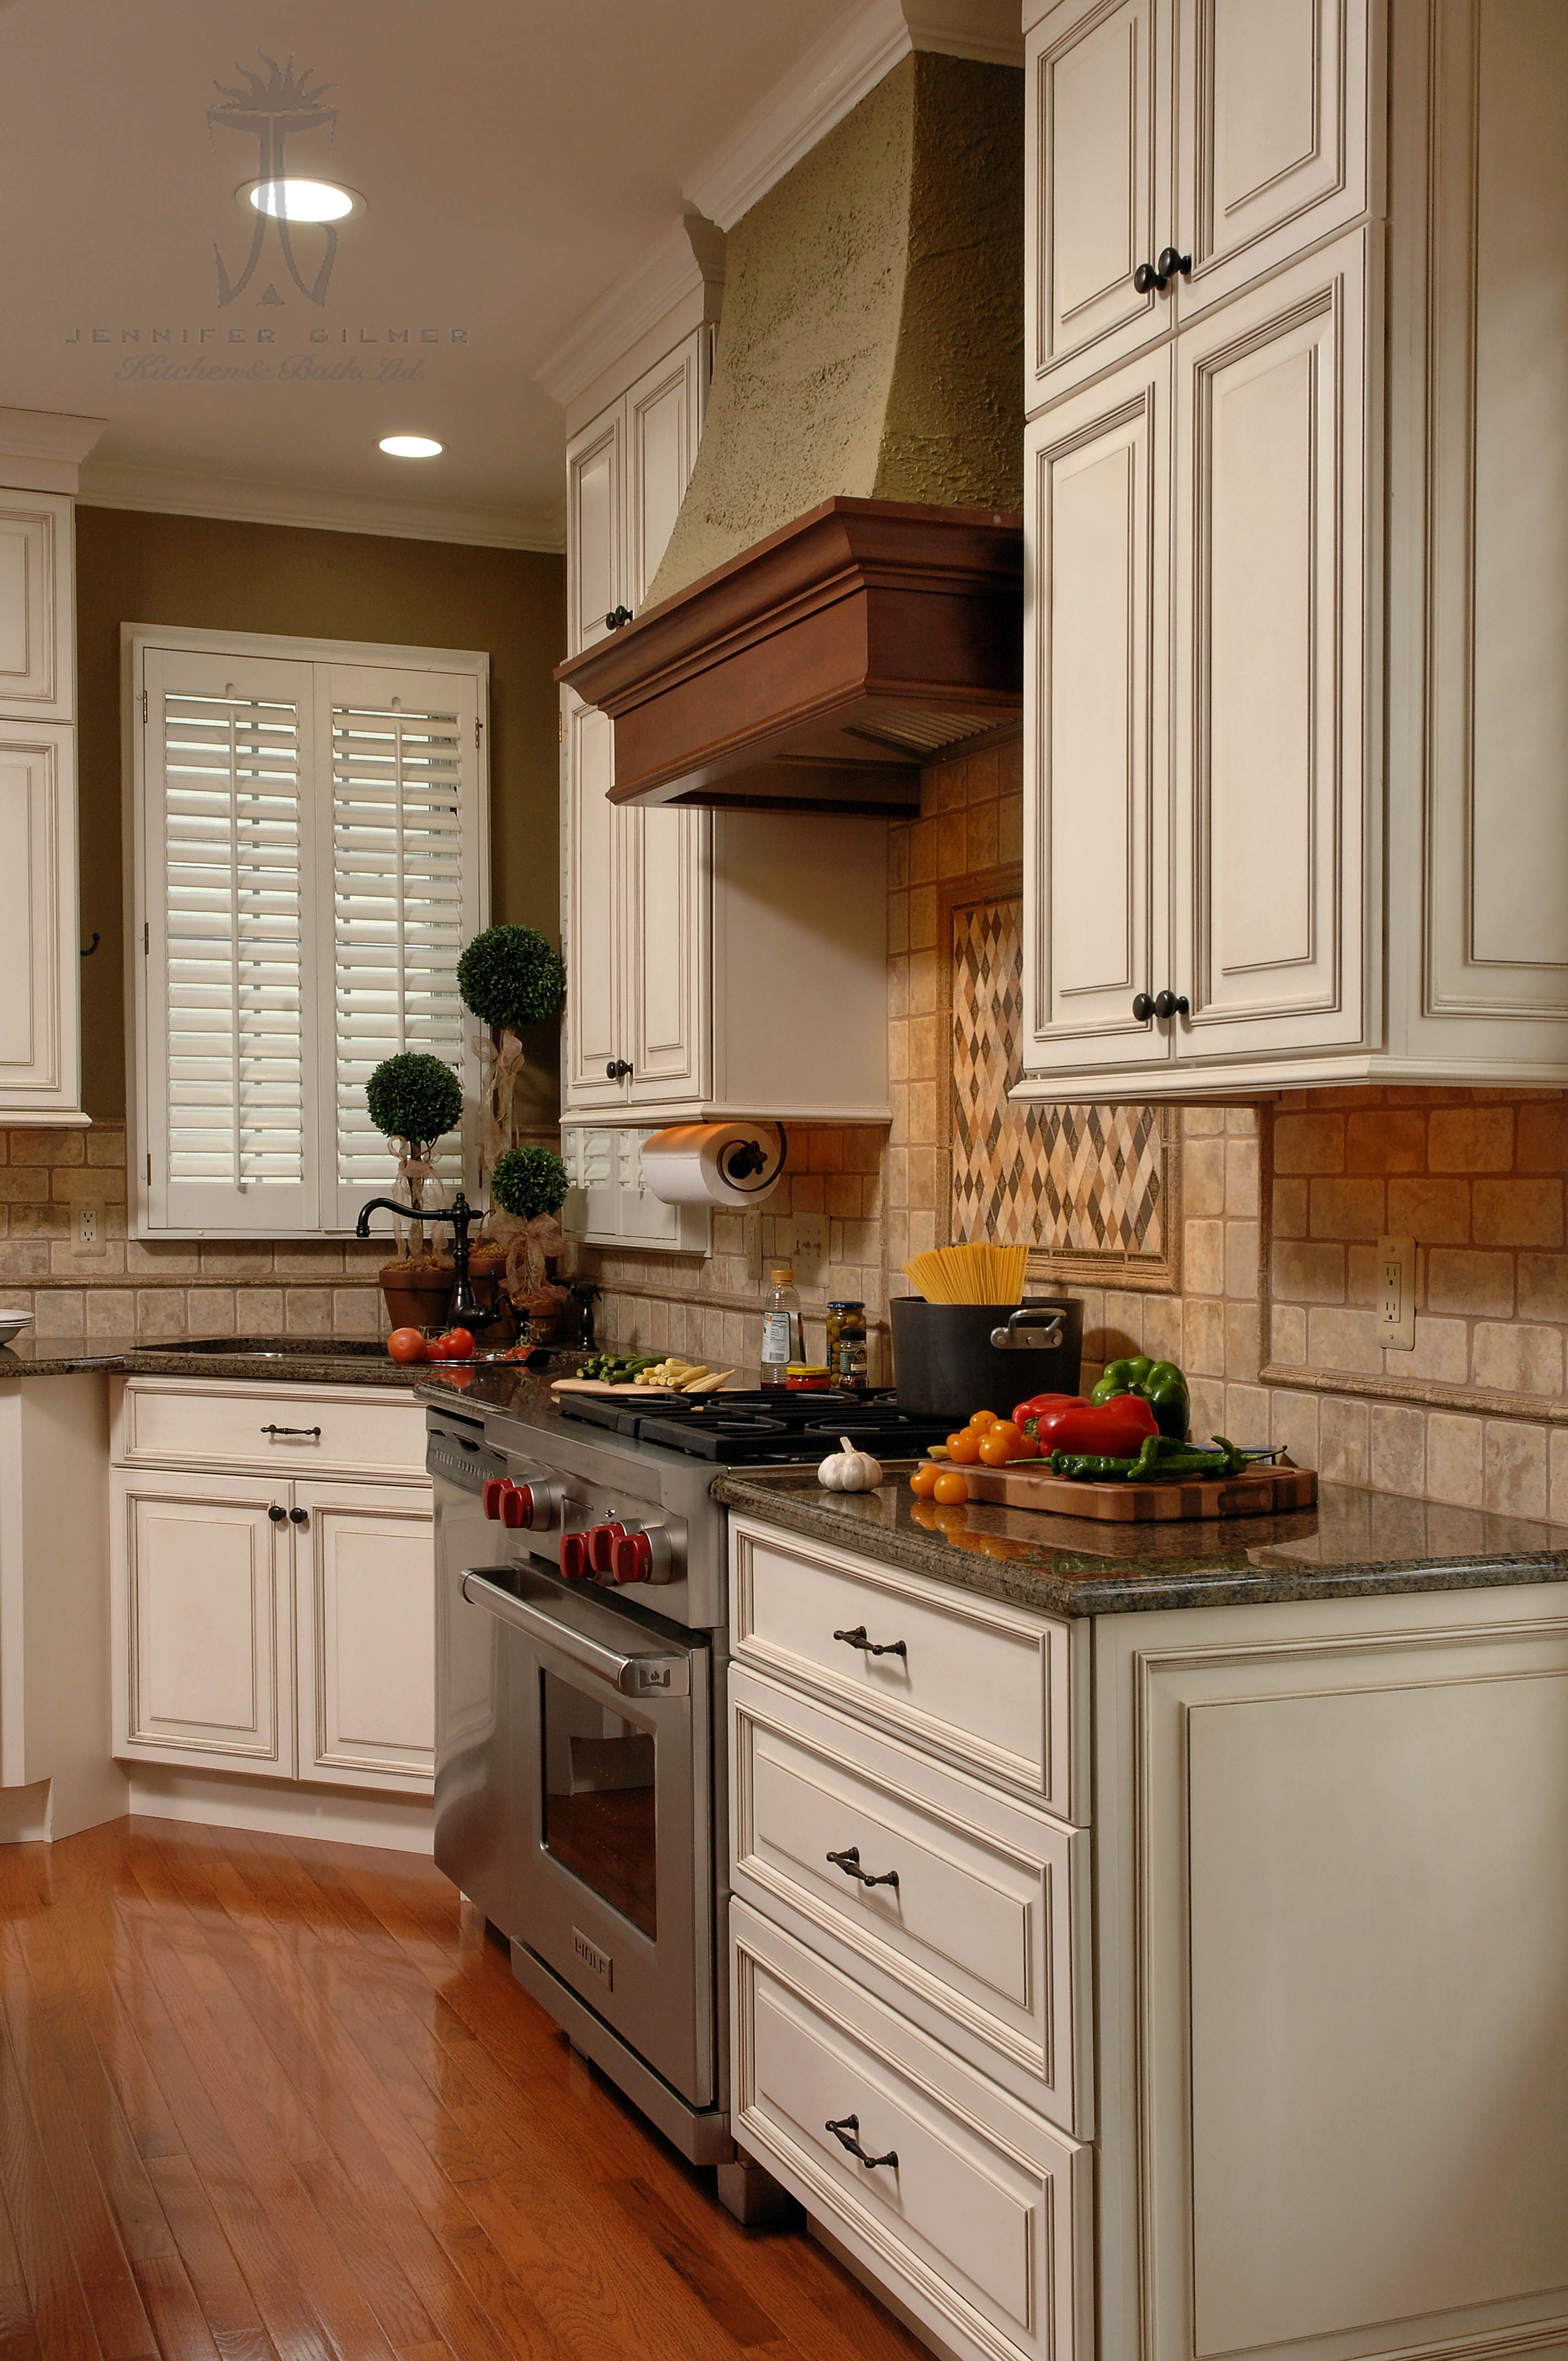 Kitchen design by #JenniferGilmer of Jennifer Gilmer ...